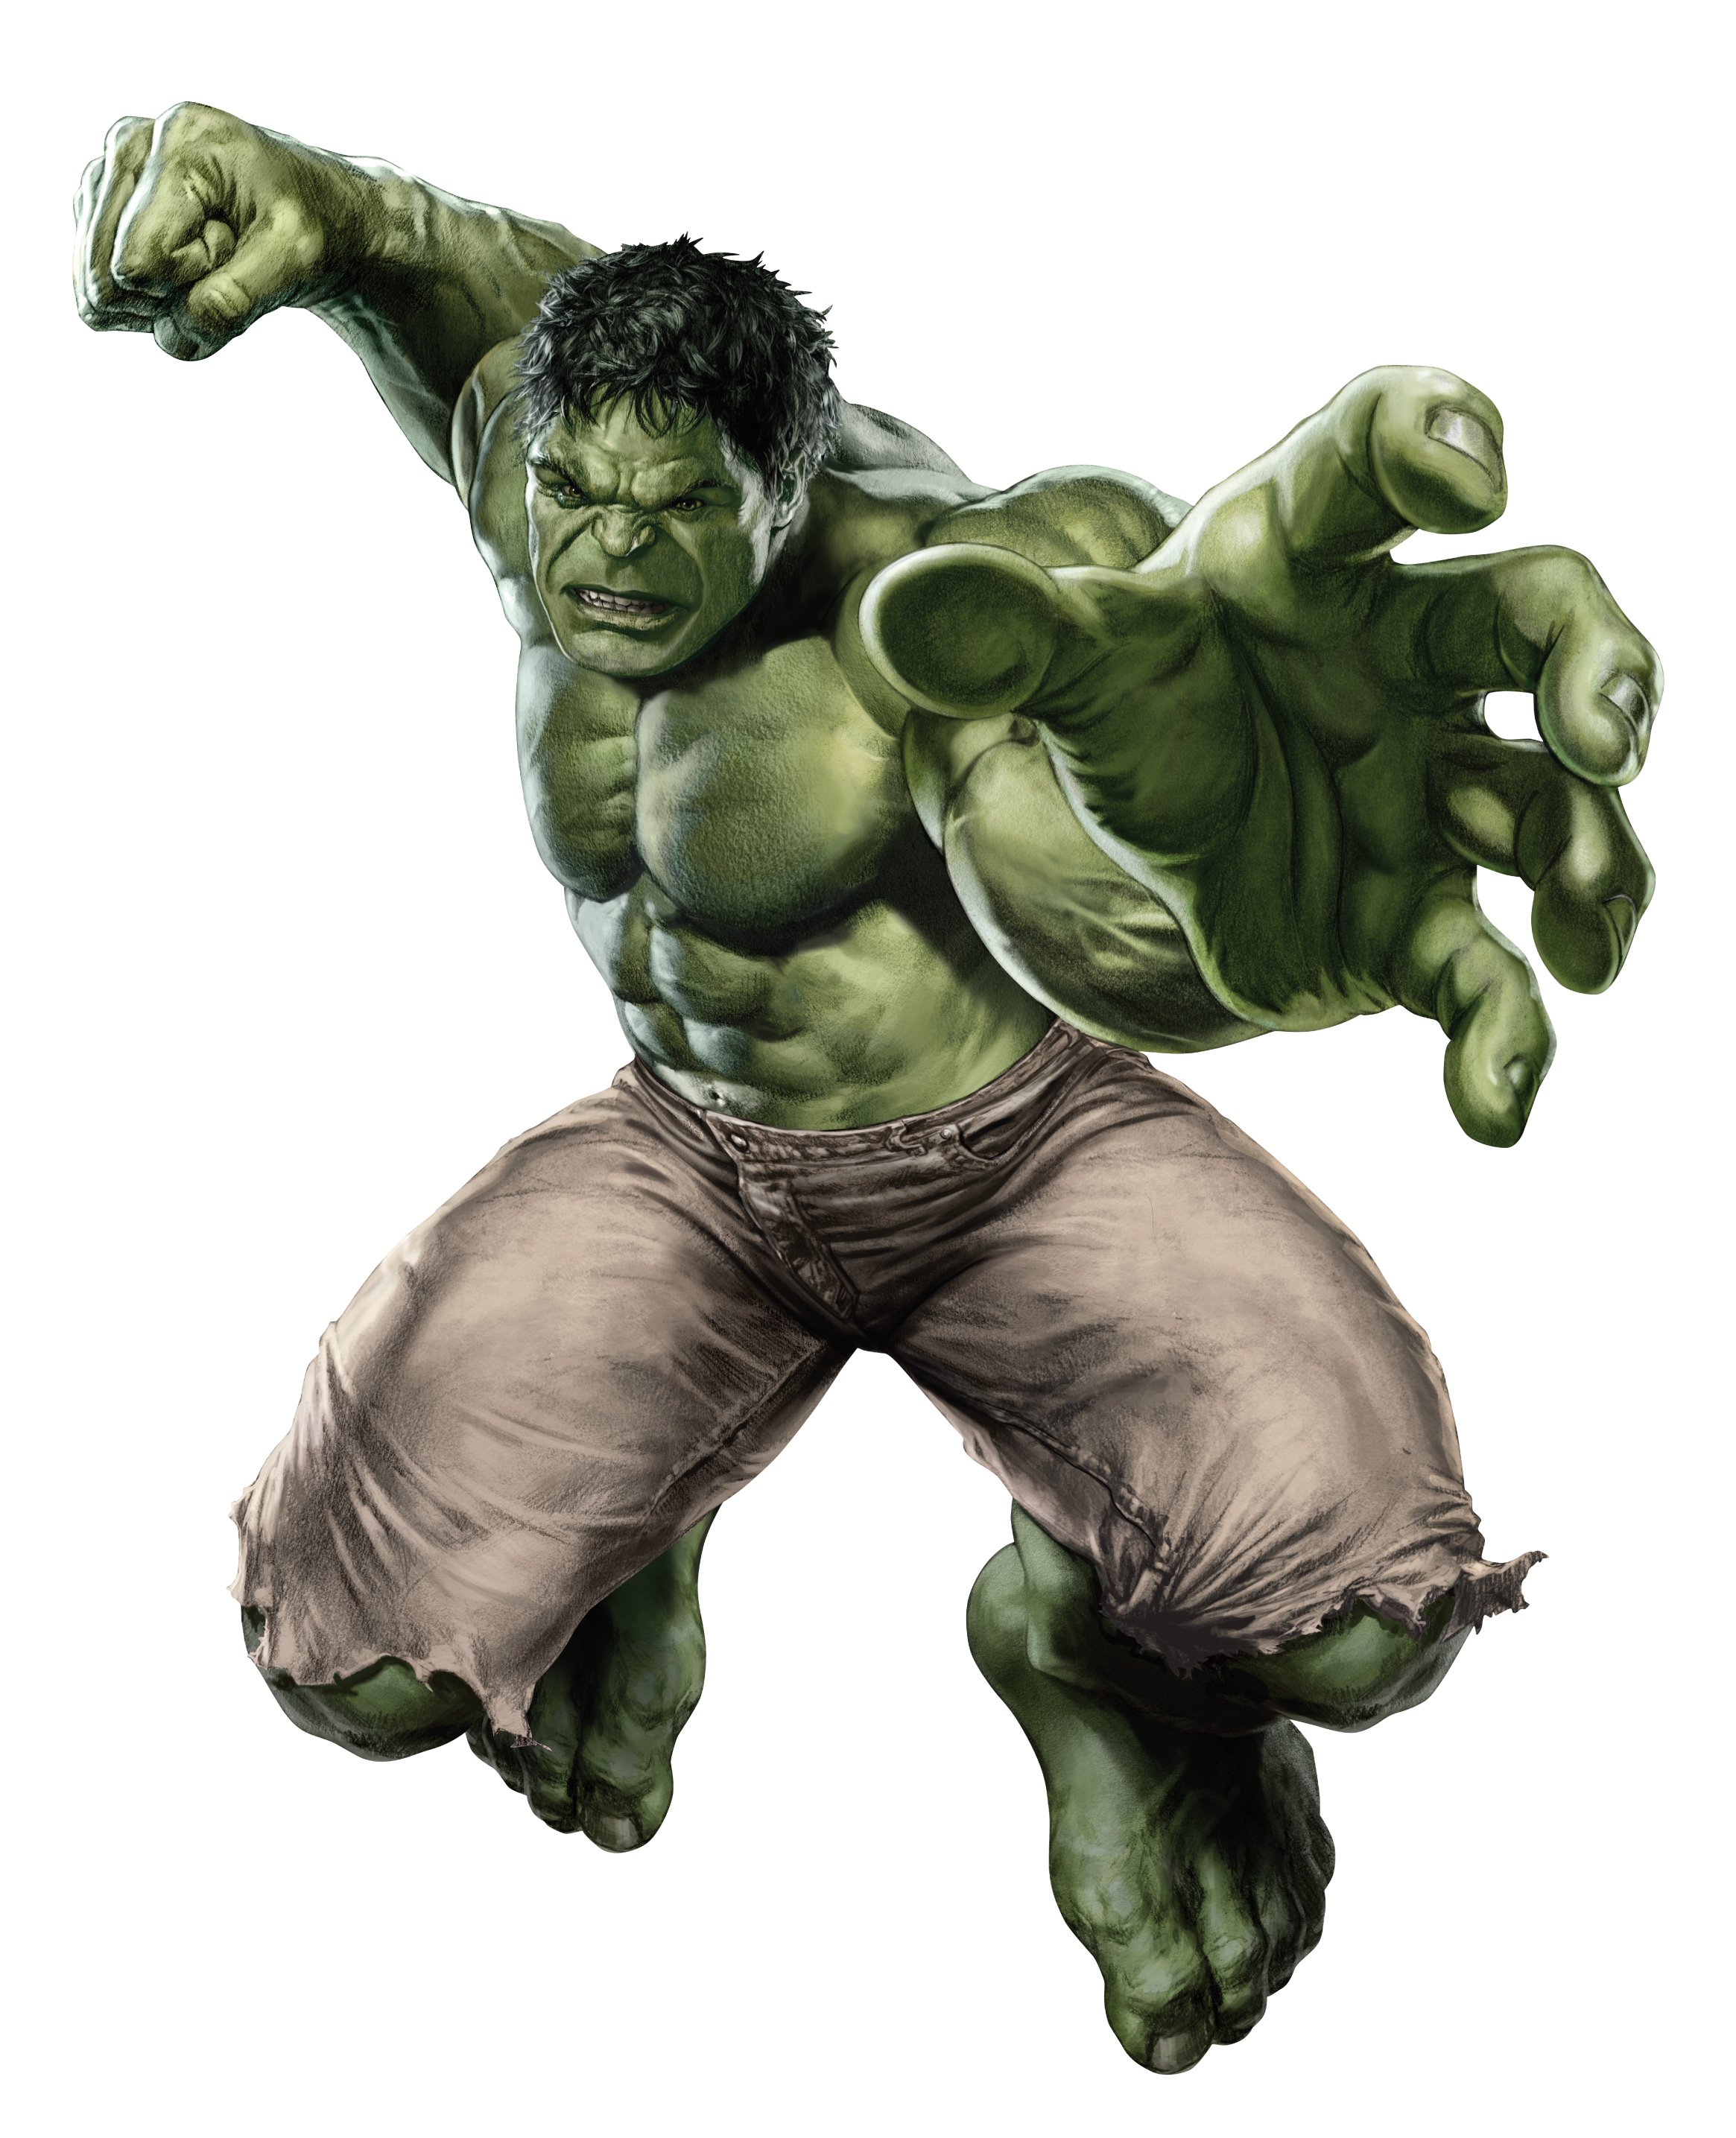 Powerful Hulk Wallpaper 833.4 Kb